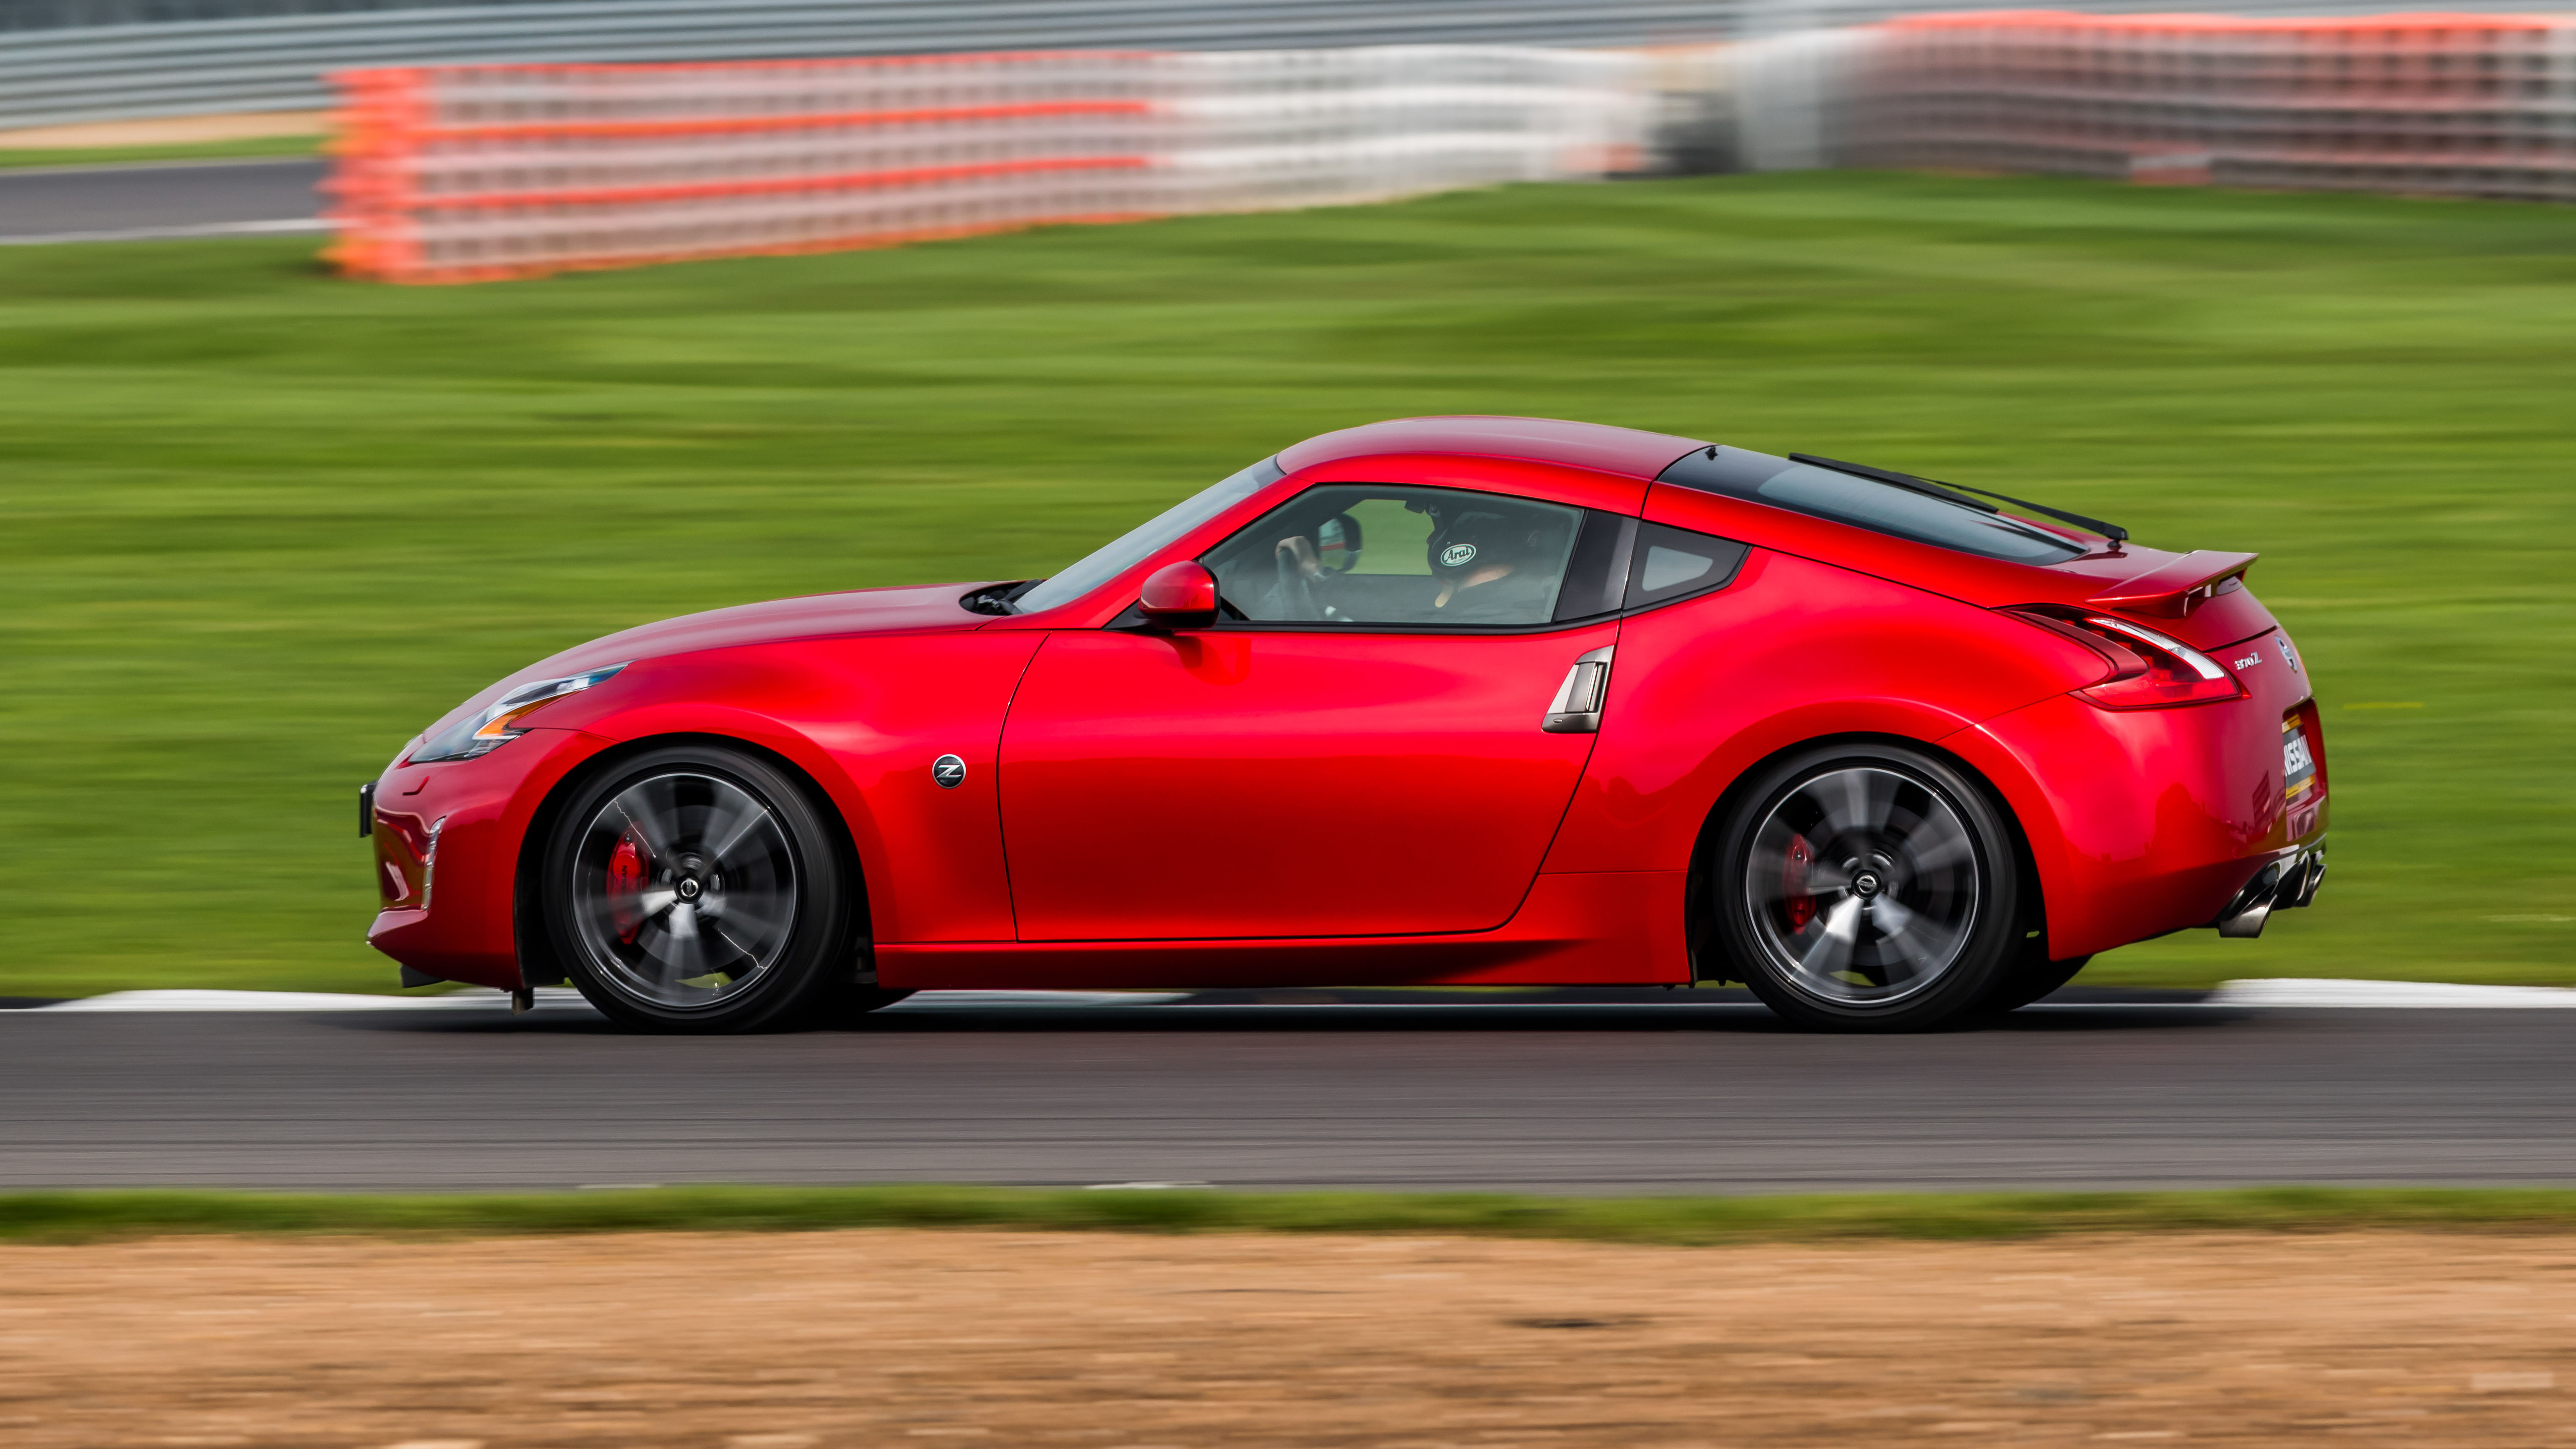 2017 Nissan 370Z Review | Top Gear